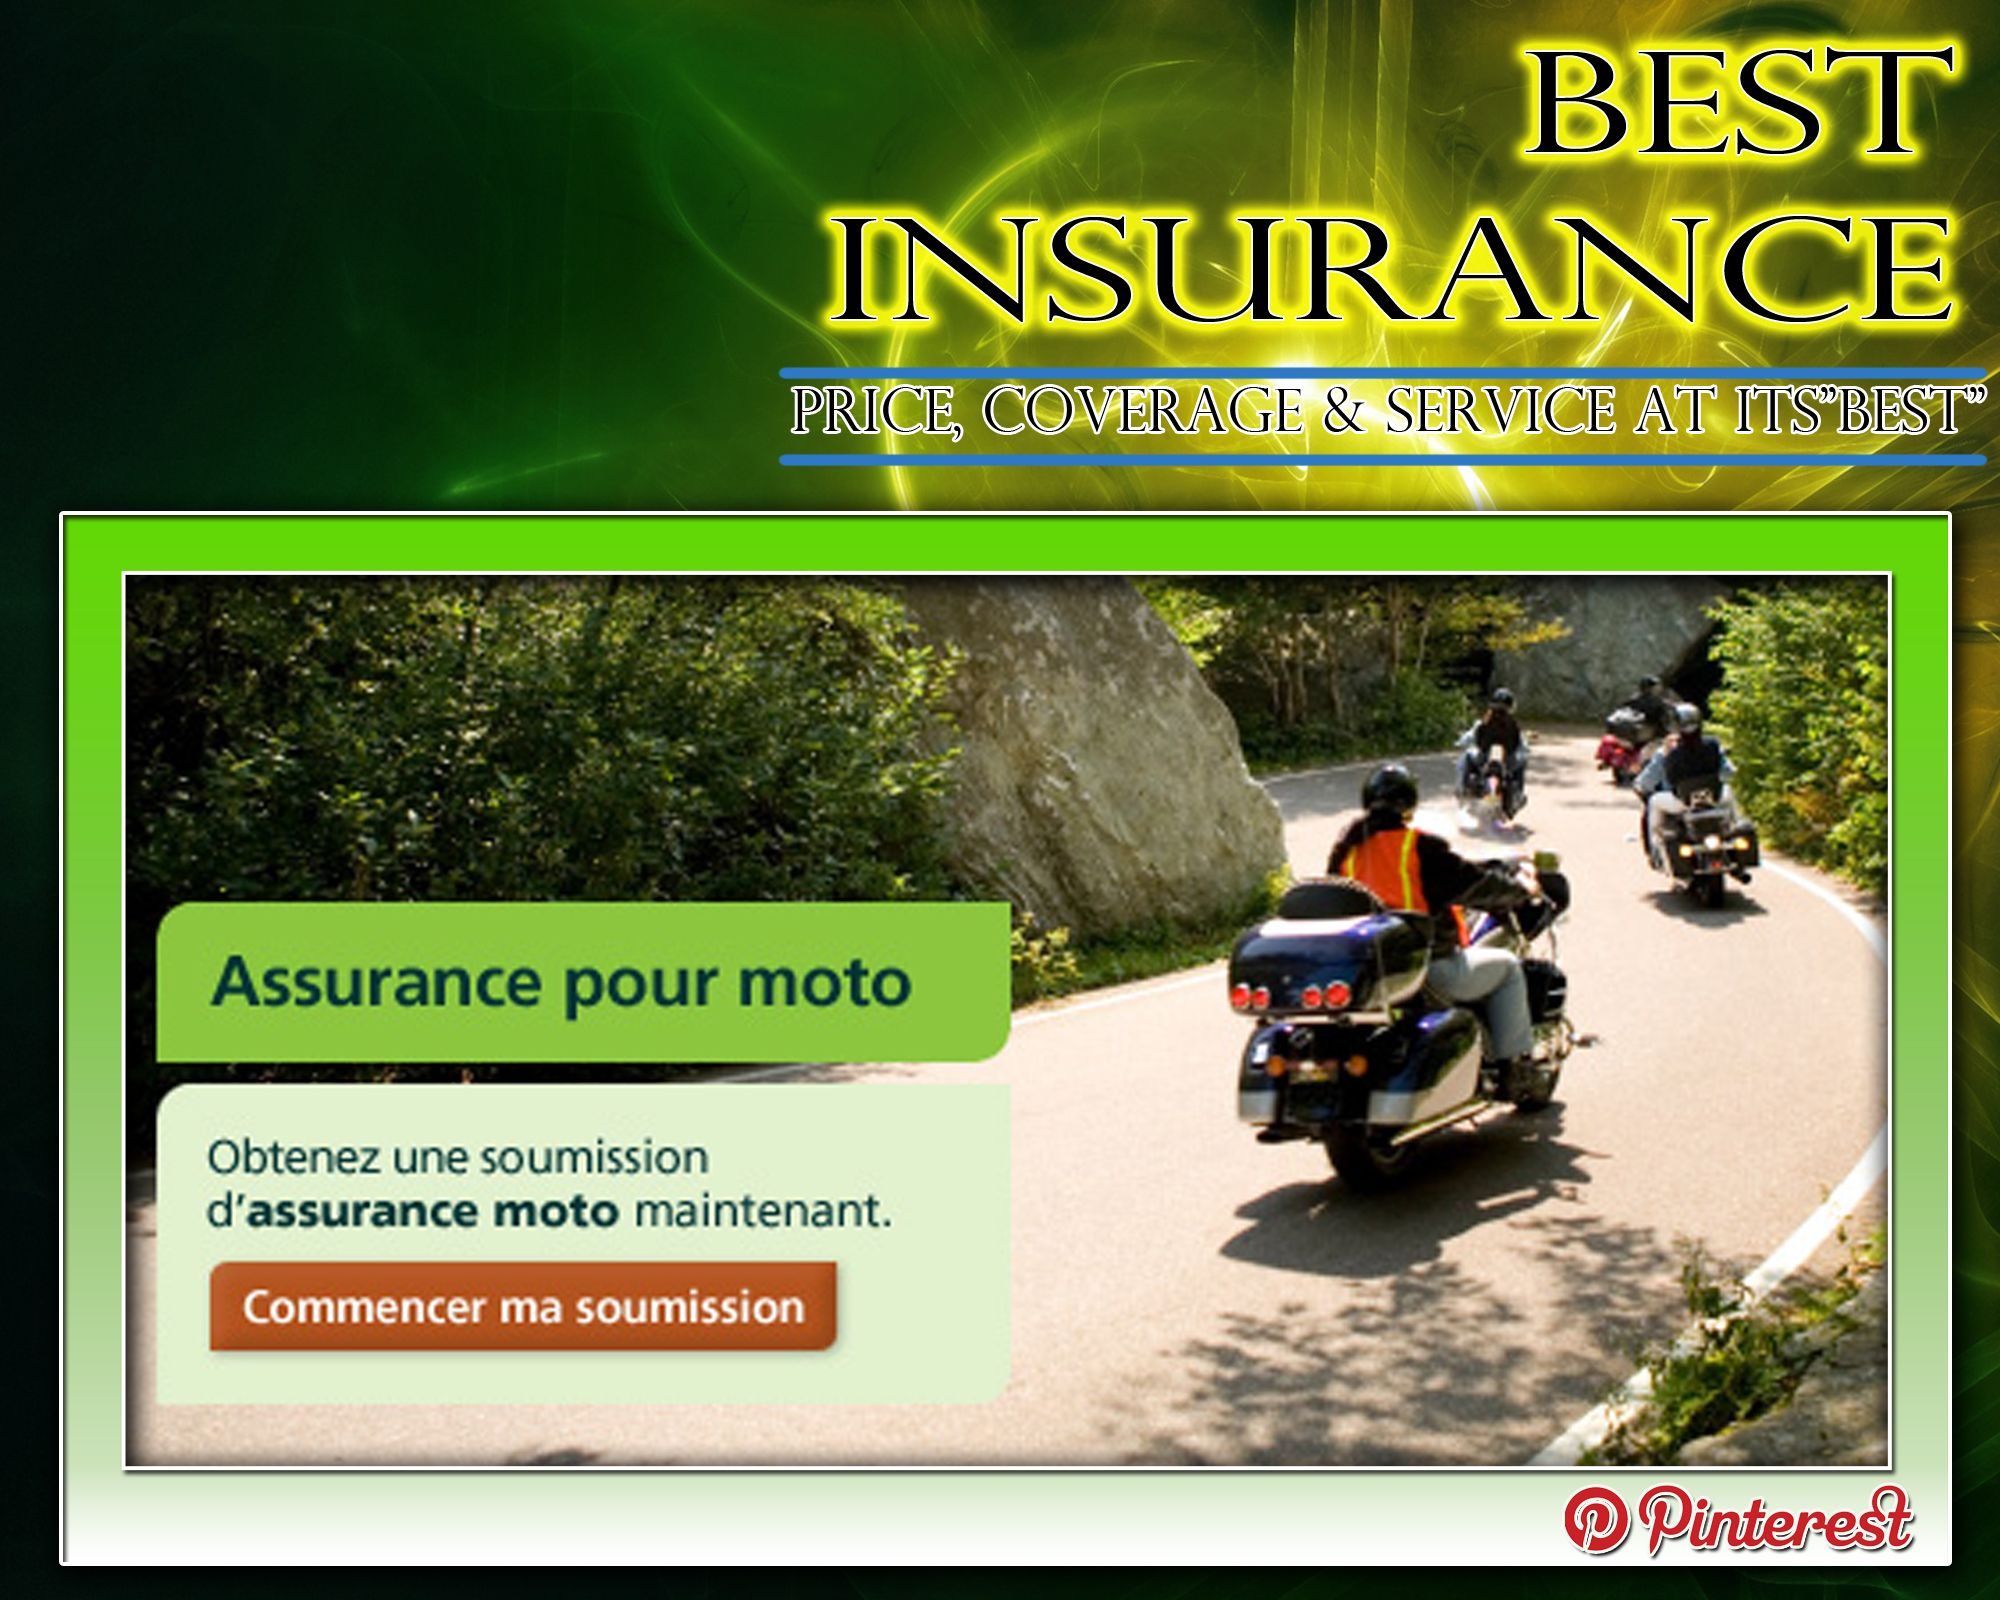 Carinsuranceft Lauderdale Motorcycle Insurance Quote Motorcycle